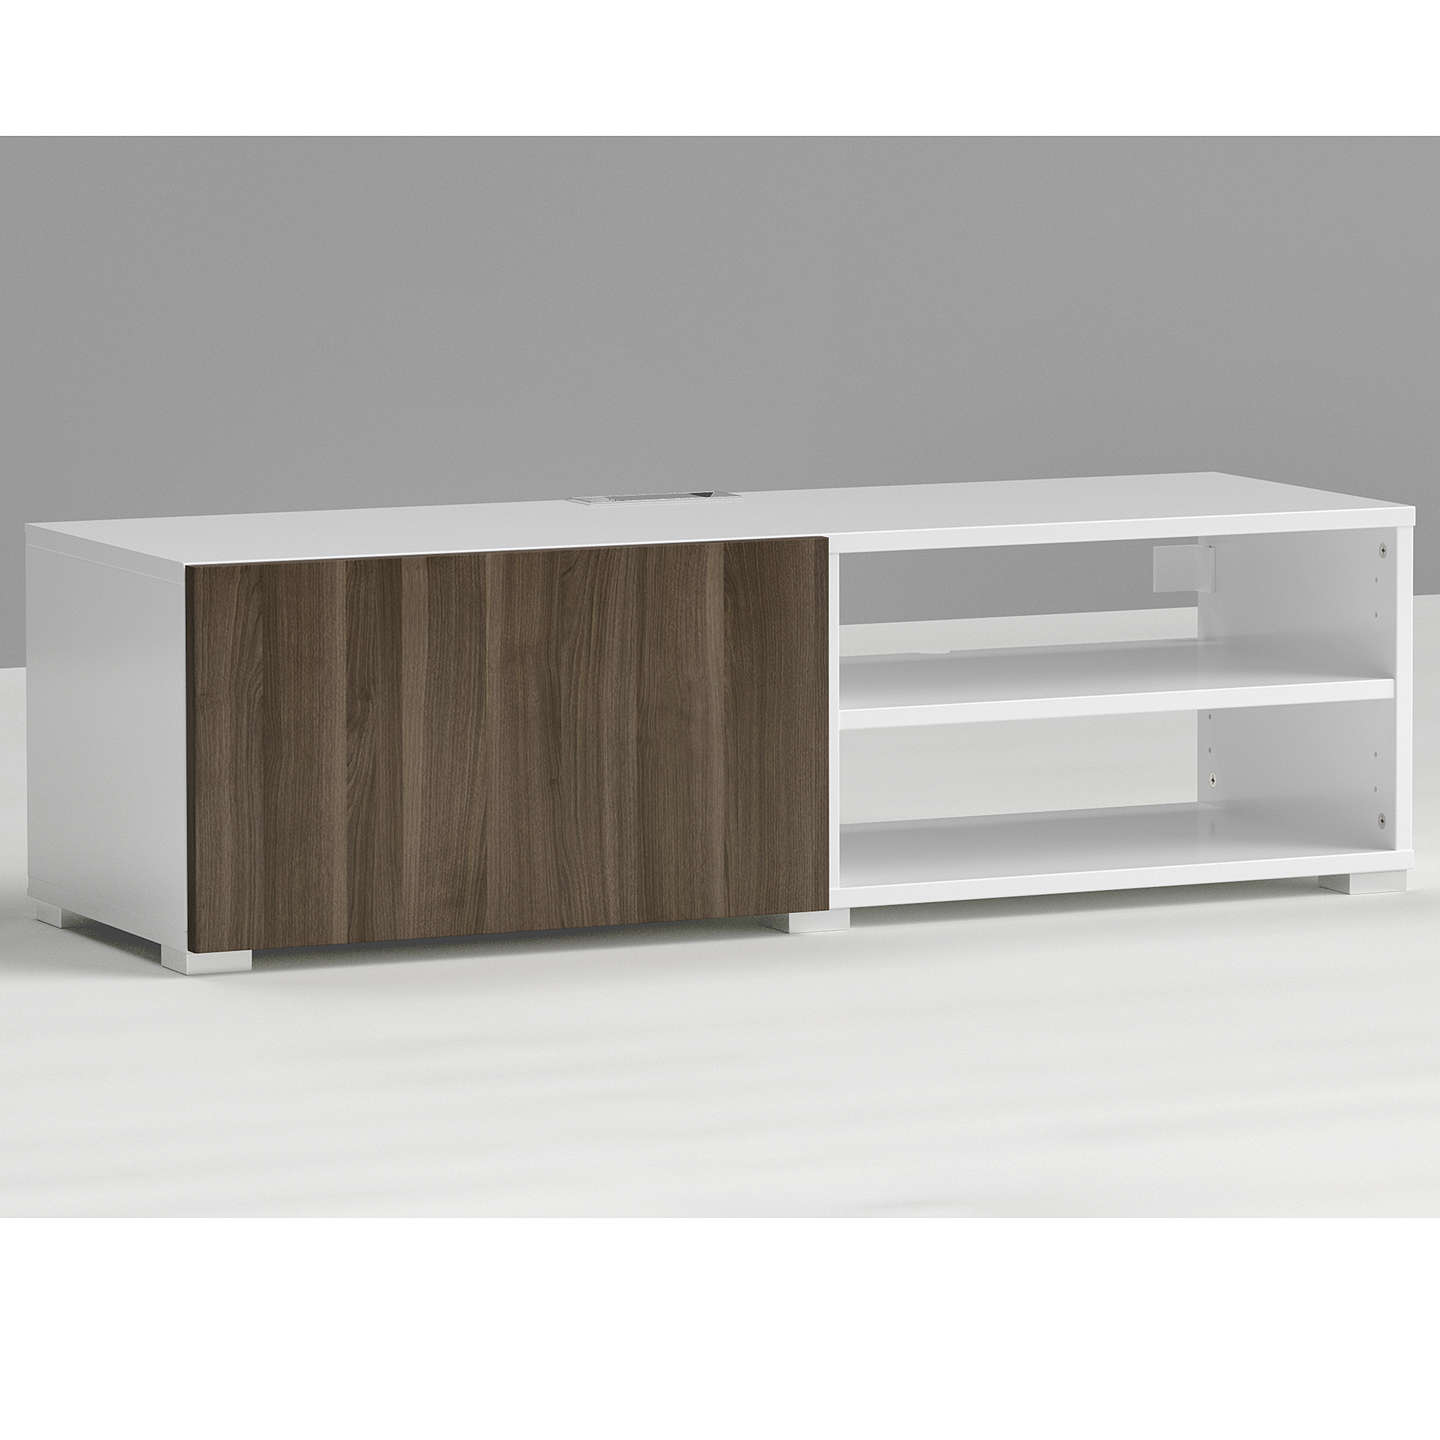 BuyHouse by John Lewis Mix it Media Unit - White frame / Grey ash doors steel door Online at johnlewis.com